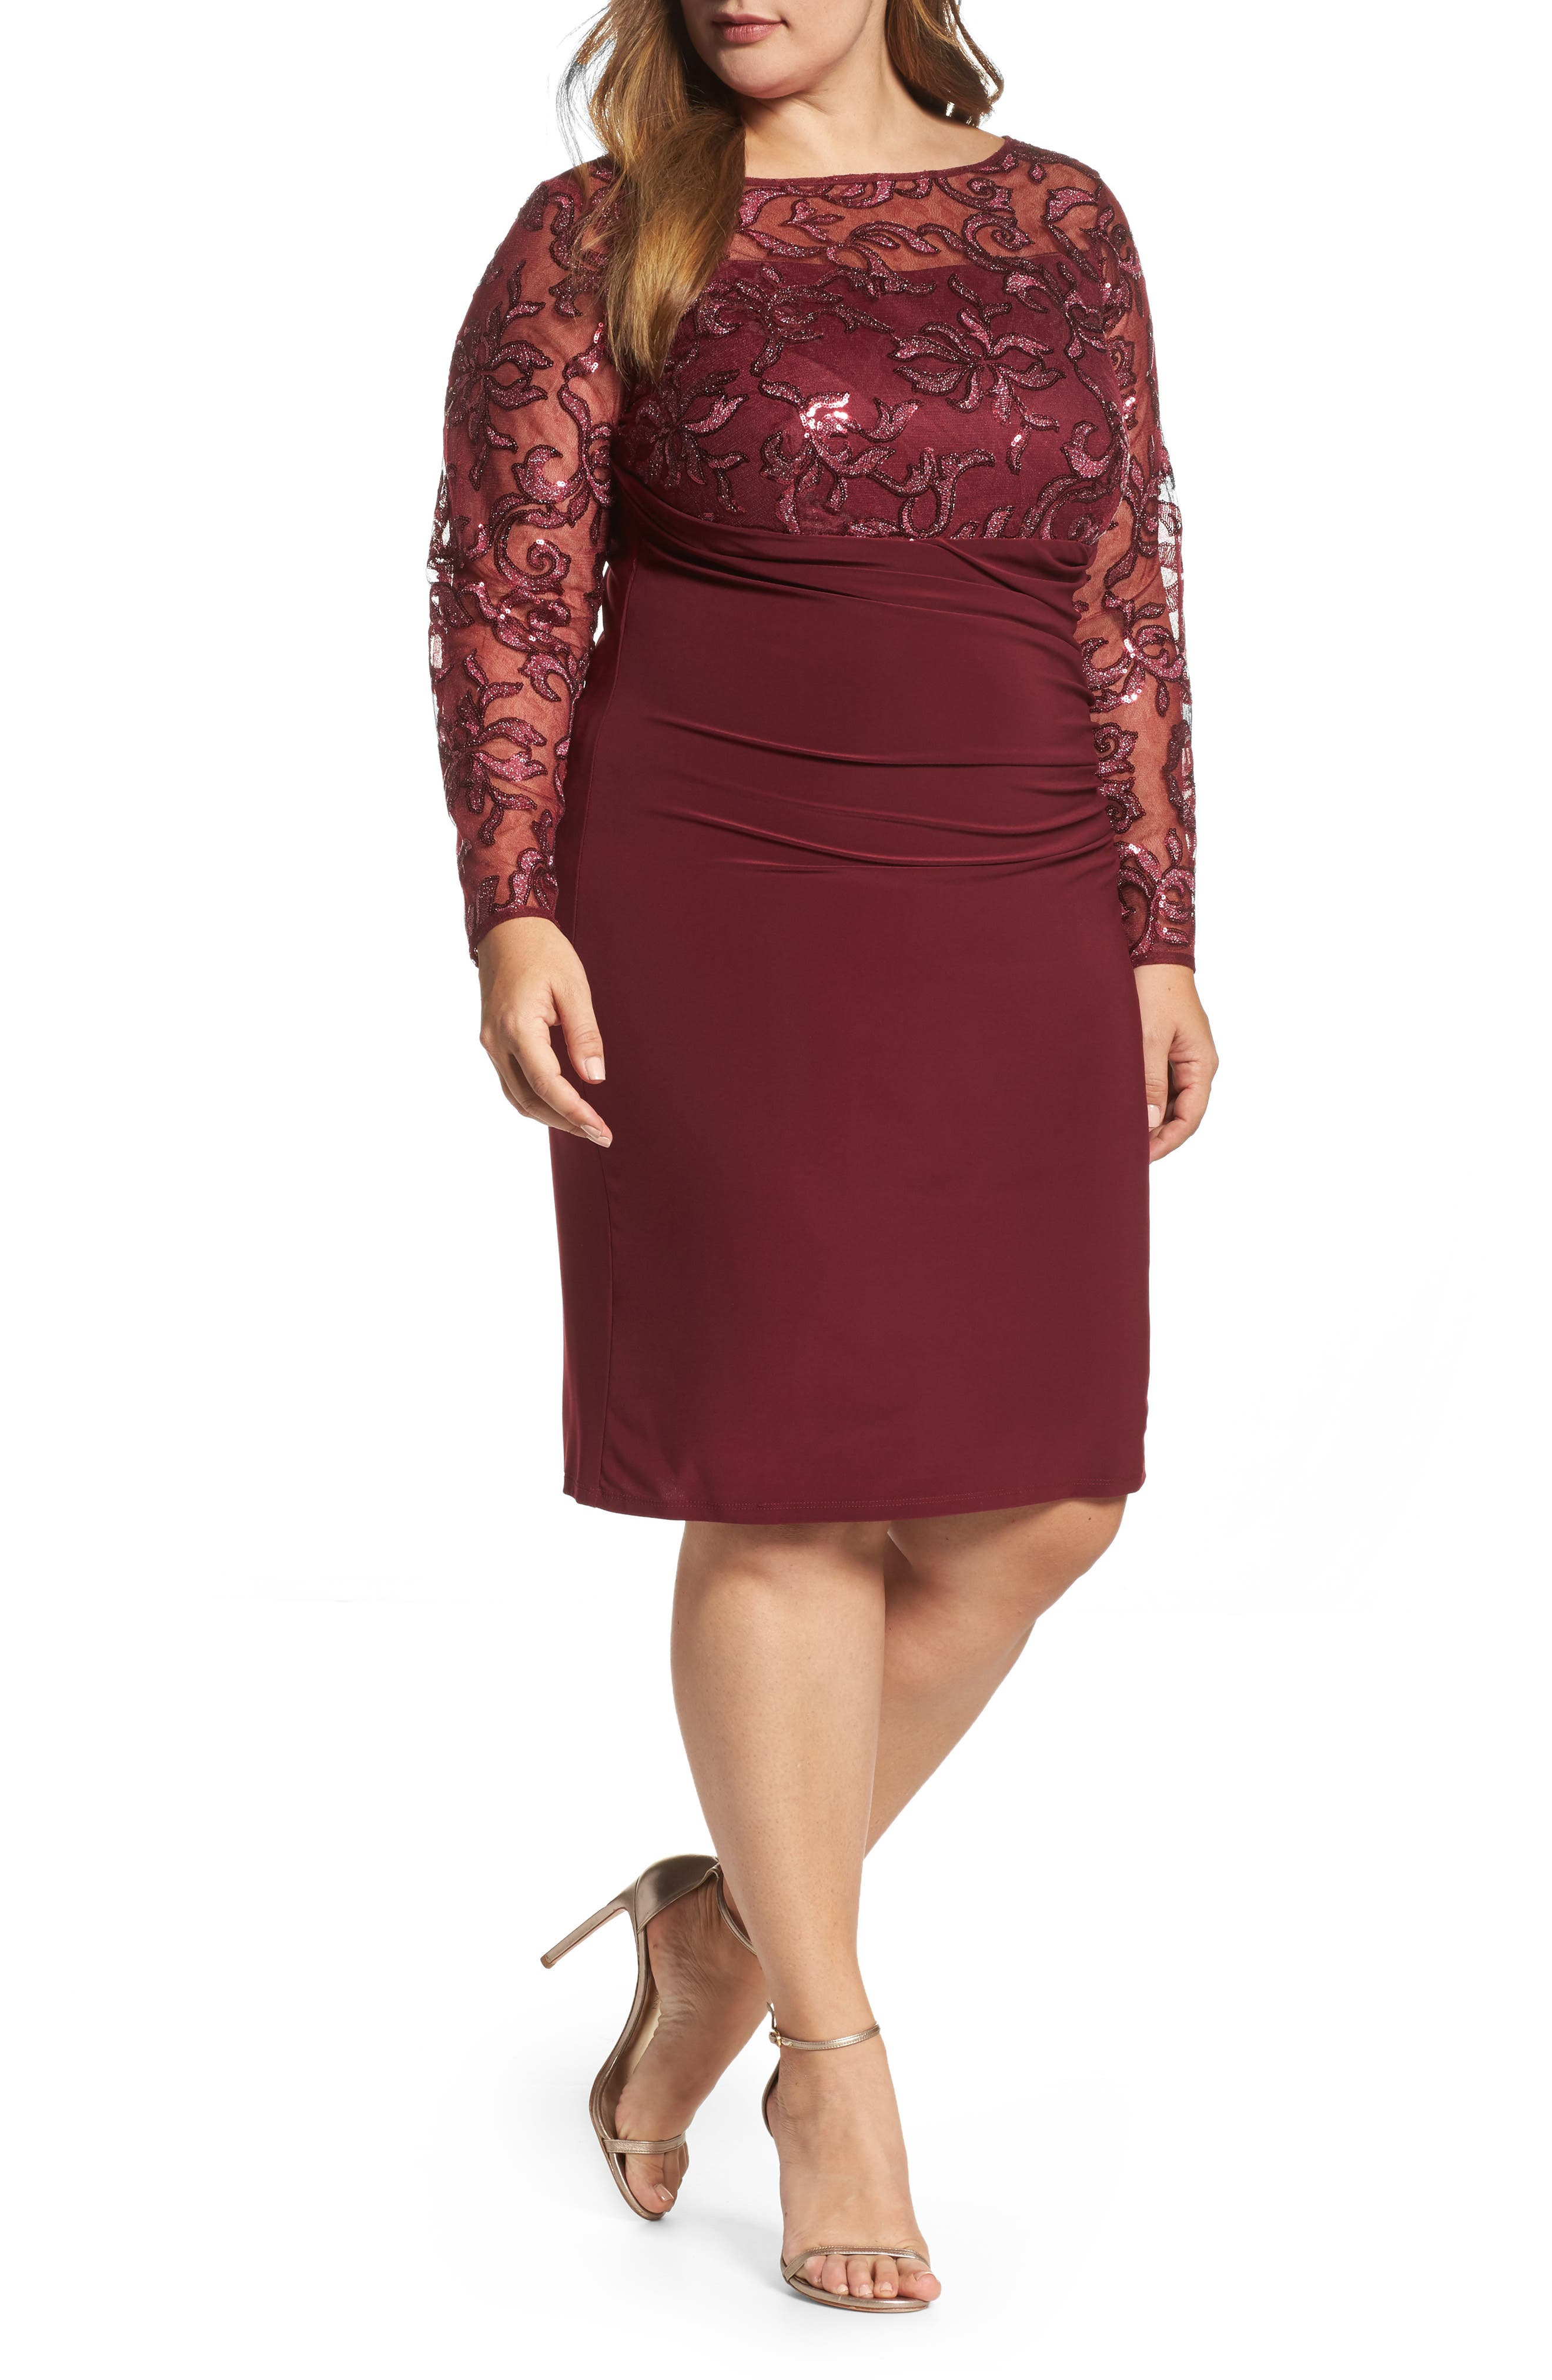 Alternate Image 1 Selected - Marina Sequin Illusion & Jersey Side Ruched Sheath Dress (Plus Size)